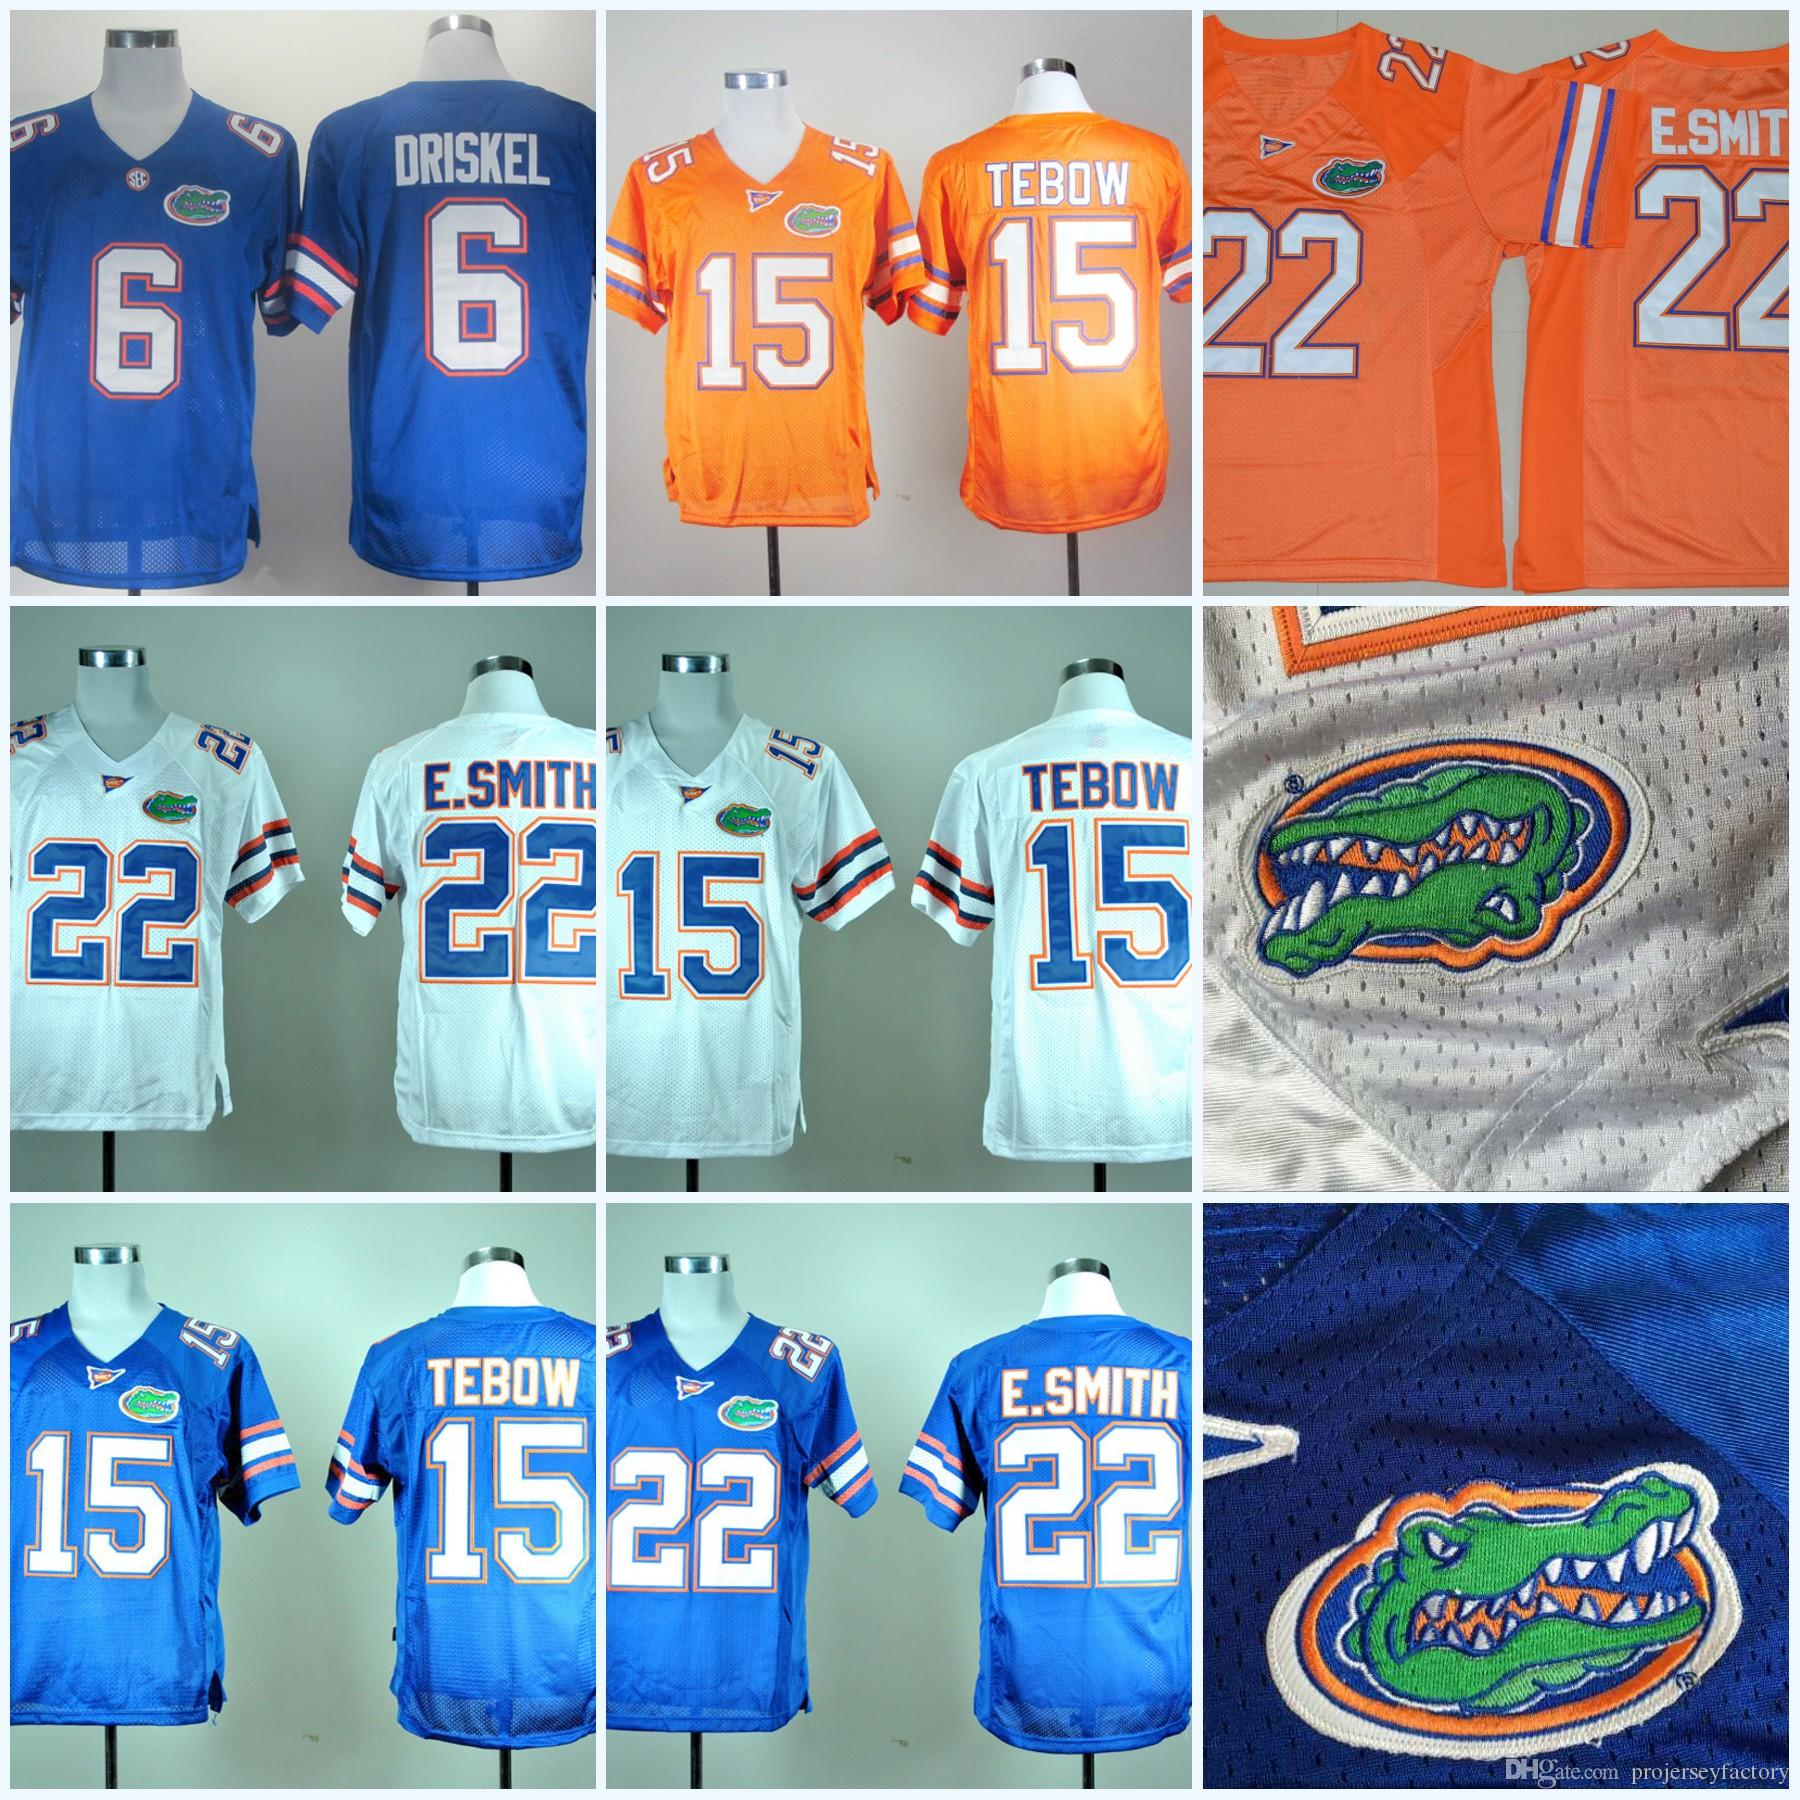 Florida Gators 15 Tim Tebow 22 E.Smith Jeff Driskel 6 Royal NCAA College Football  Jersey White Orange Blue Double Stitched Name   Number UK 2019 From ... 76153e035